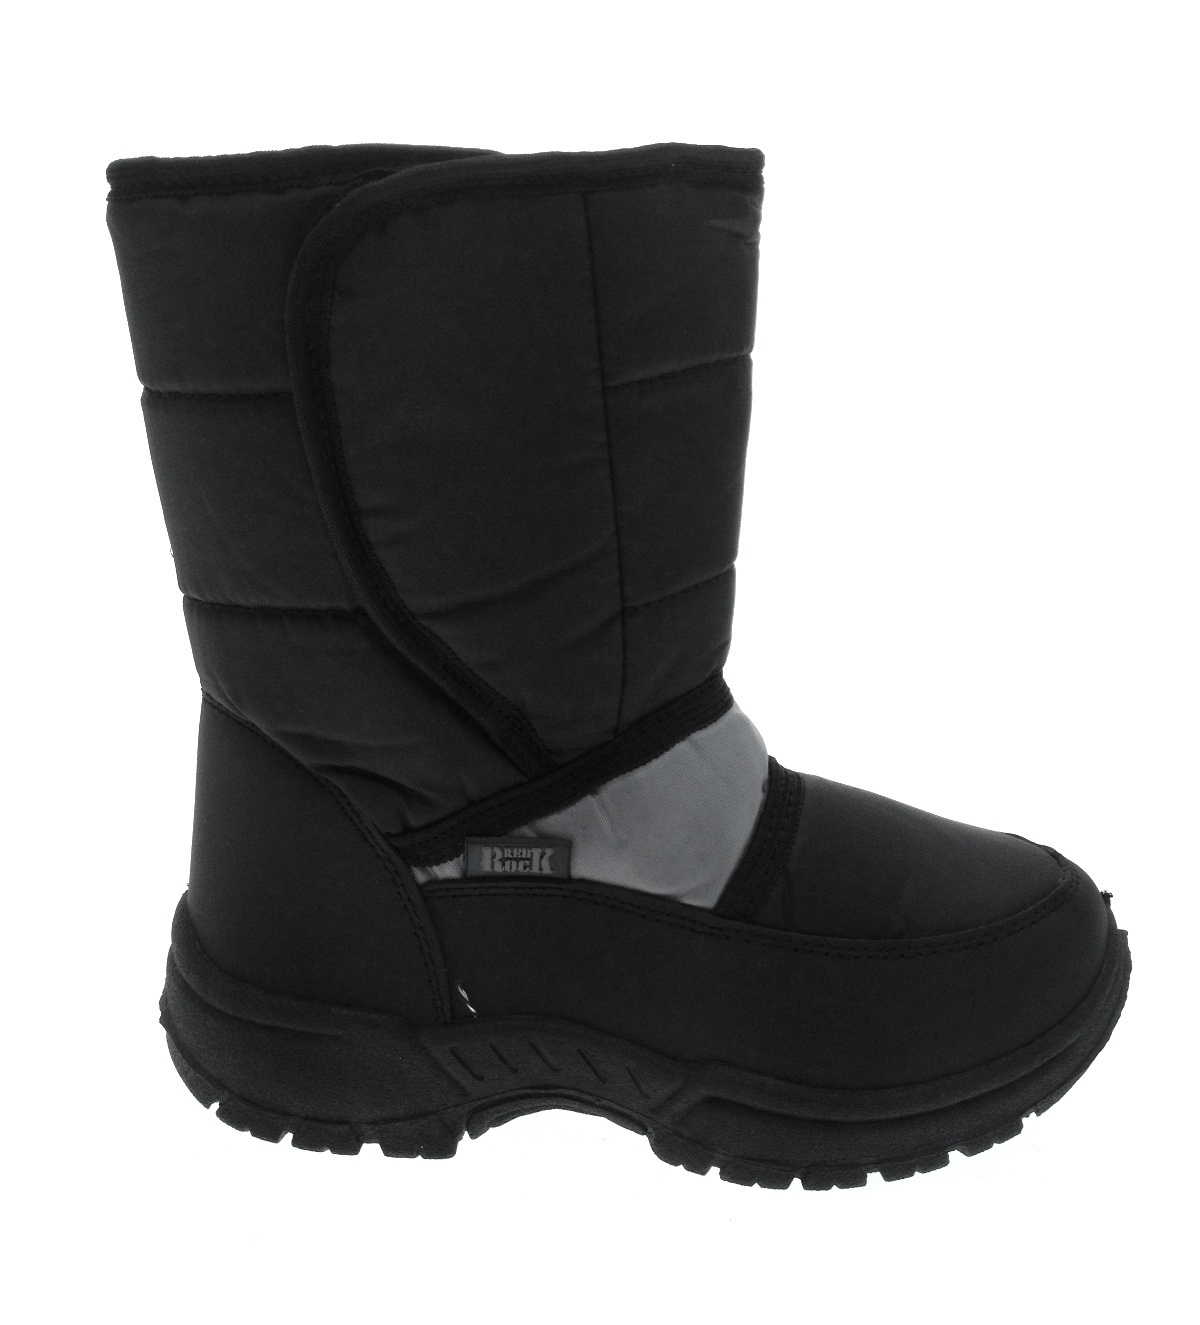 Kids Girls Boys Ladies Waterproof Sole Snow Boots Mucker Warm ...